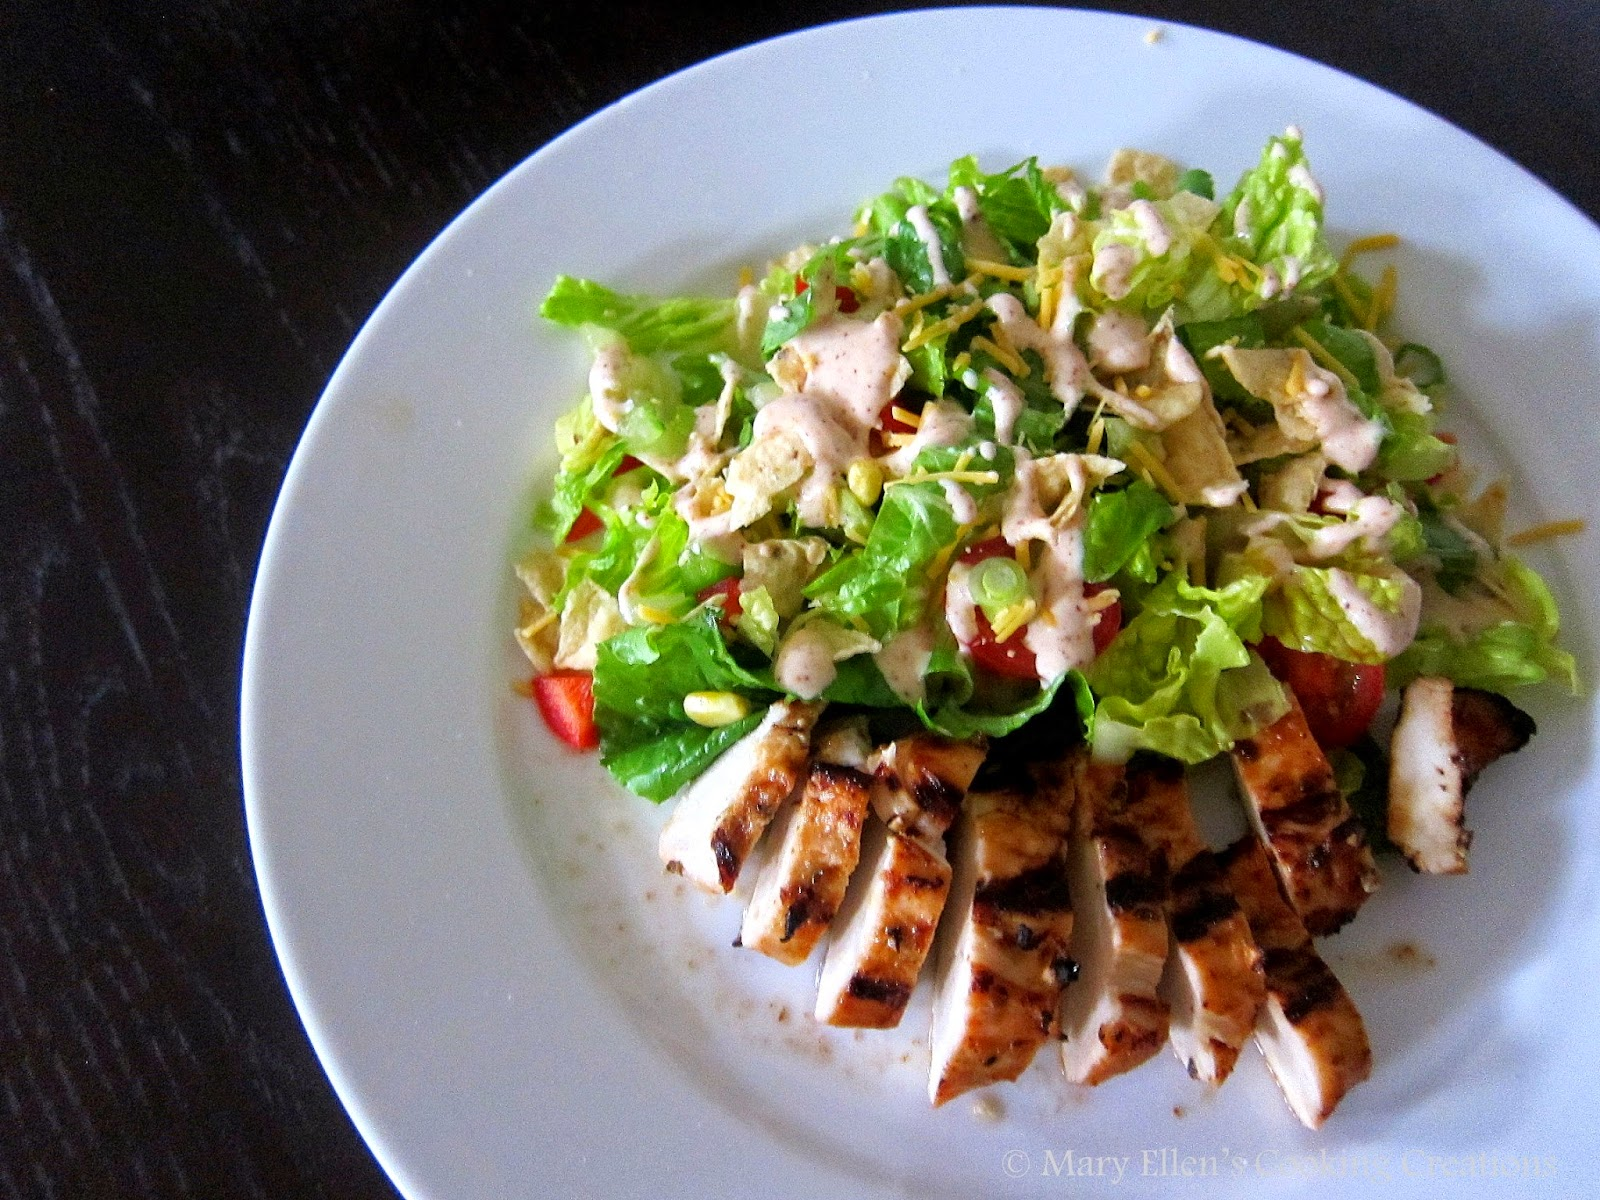 bbq-chili grilled chicken with a tex mex chopped salad and chili-ranch dressing